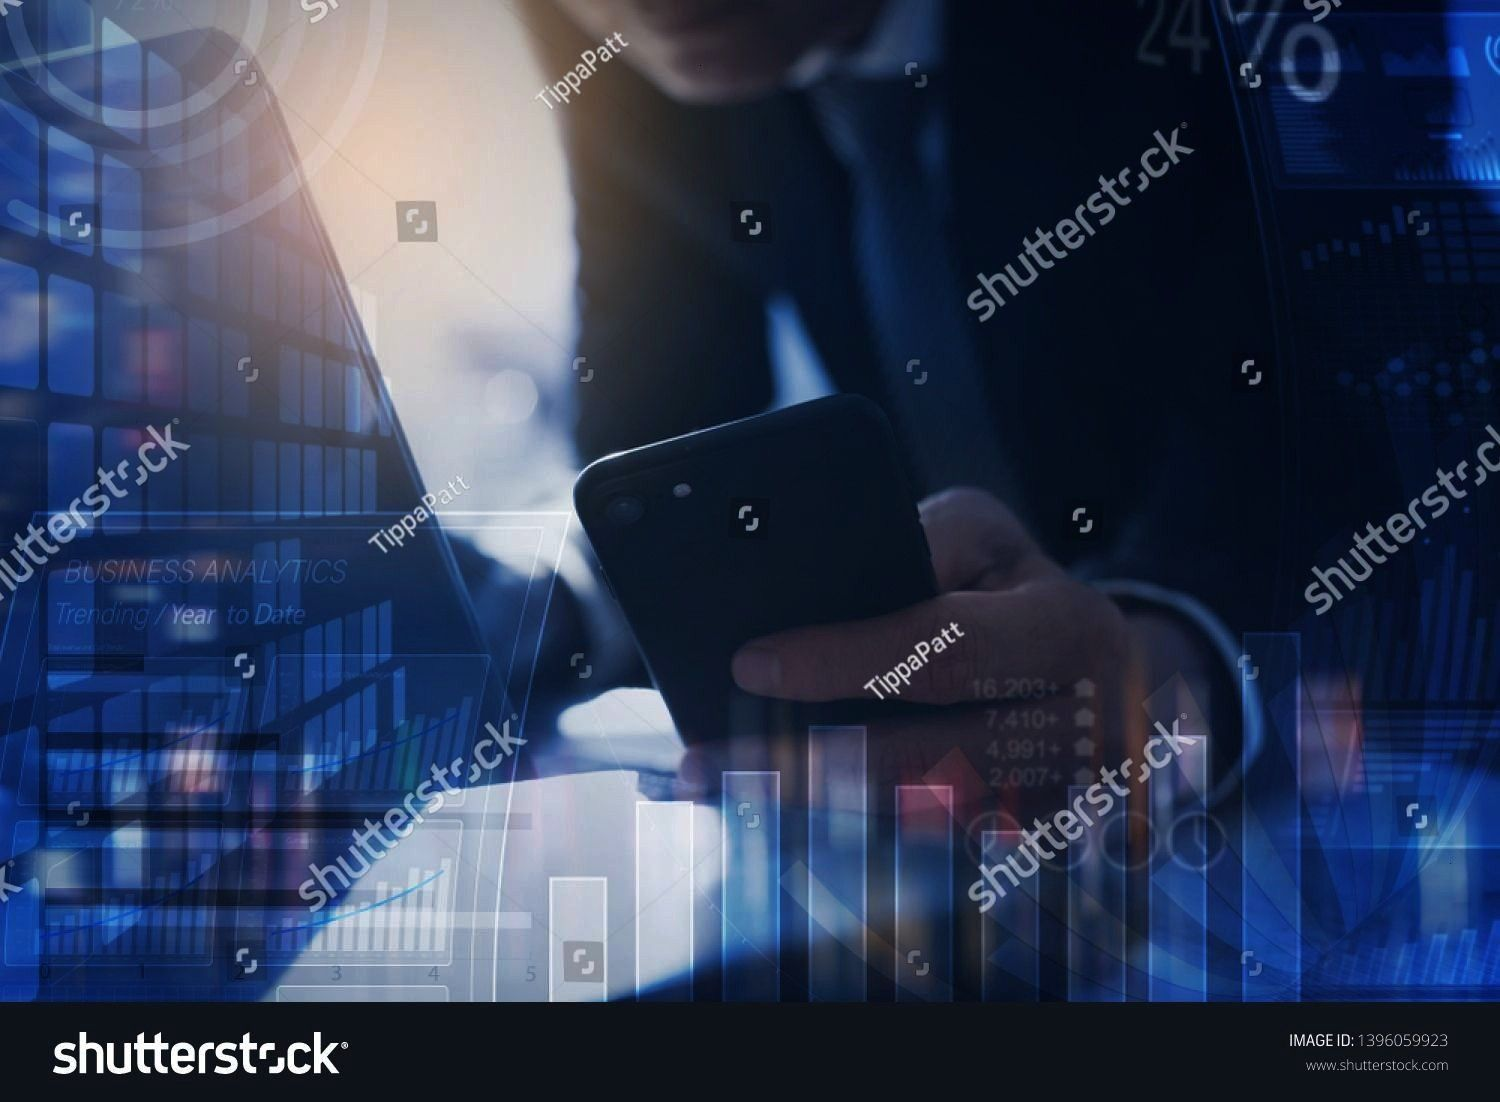 concept digital diagram graph interface Businessman finance analyst working in office Man using smartphone laptop with financial data modern dashboard computer interface...